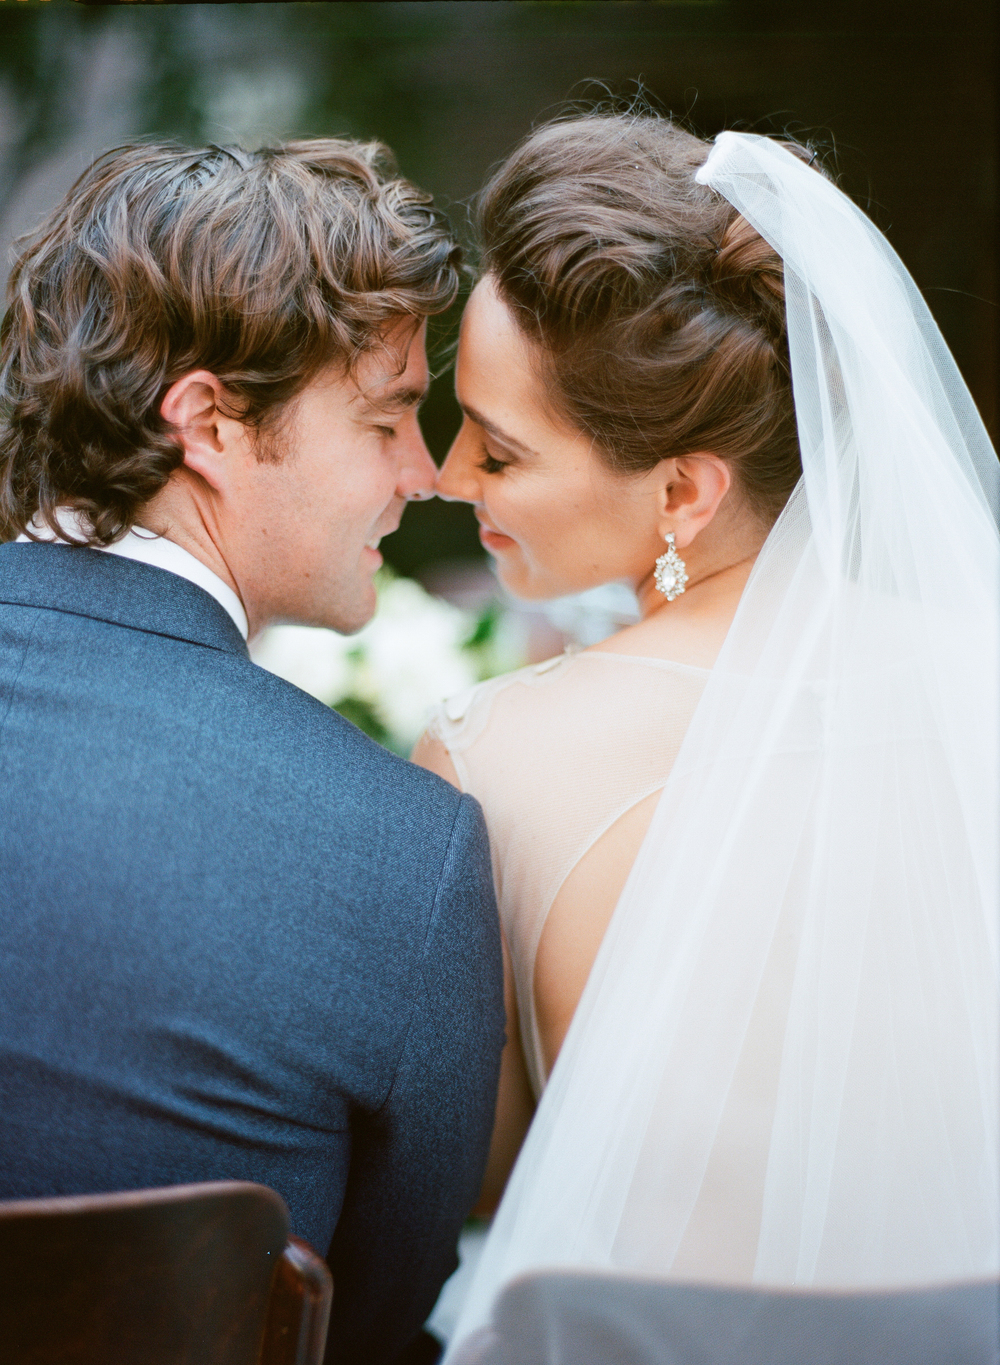 hannah_shih_hanaluluco_cj_isaac_charlie_juliet_ombre_chambray_prospect_park_brooklyn_wedding_46.jpg